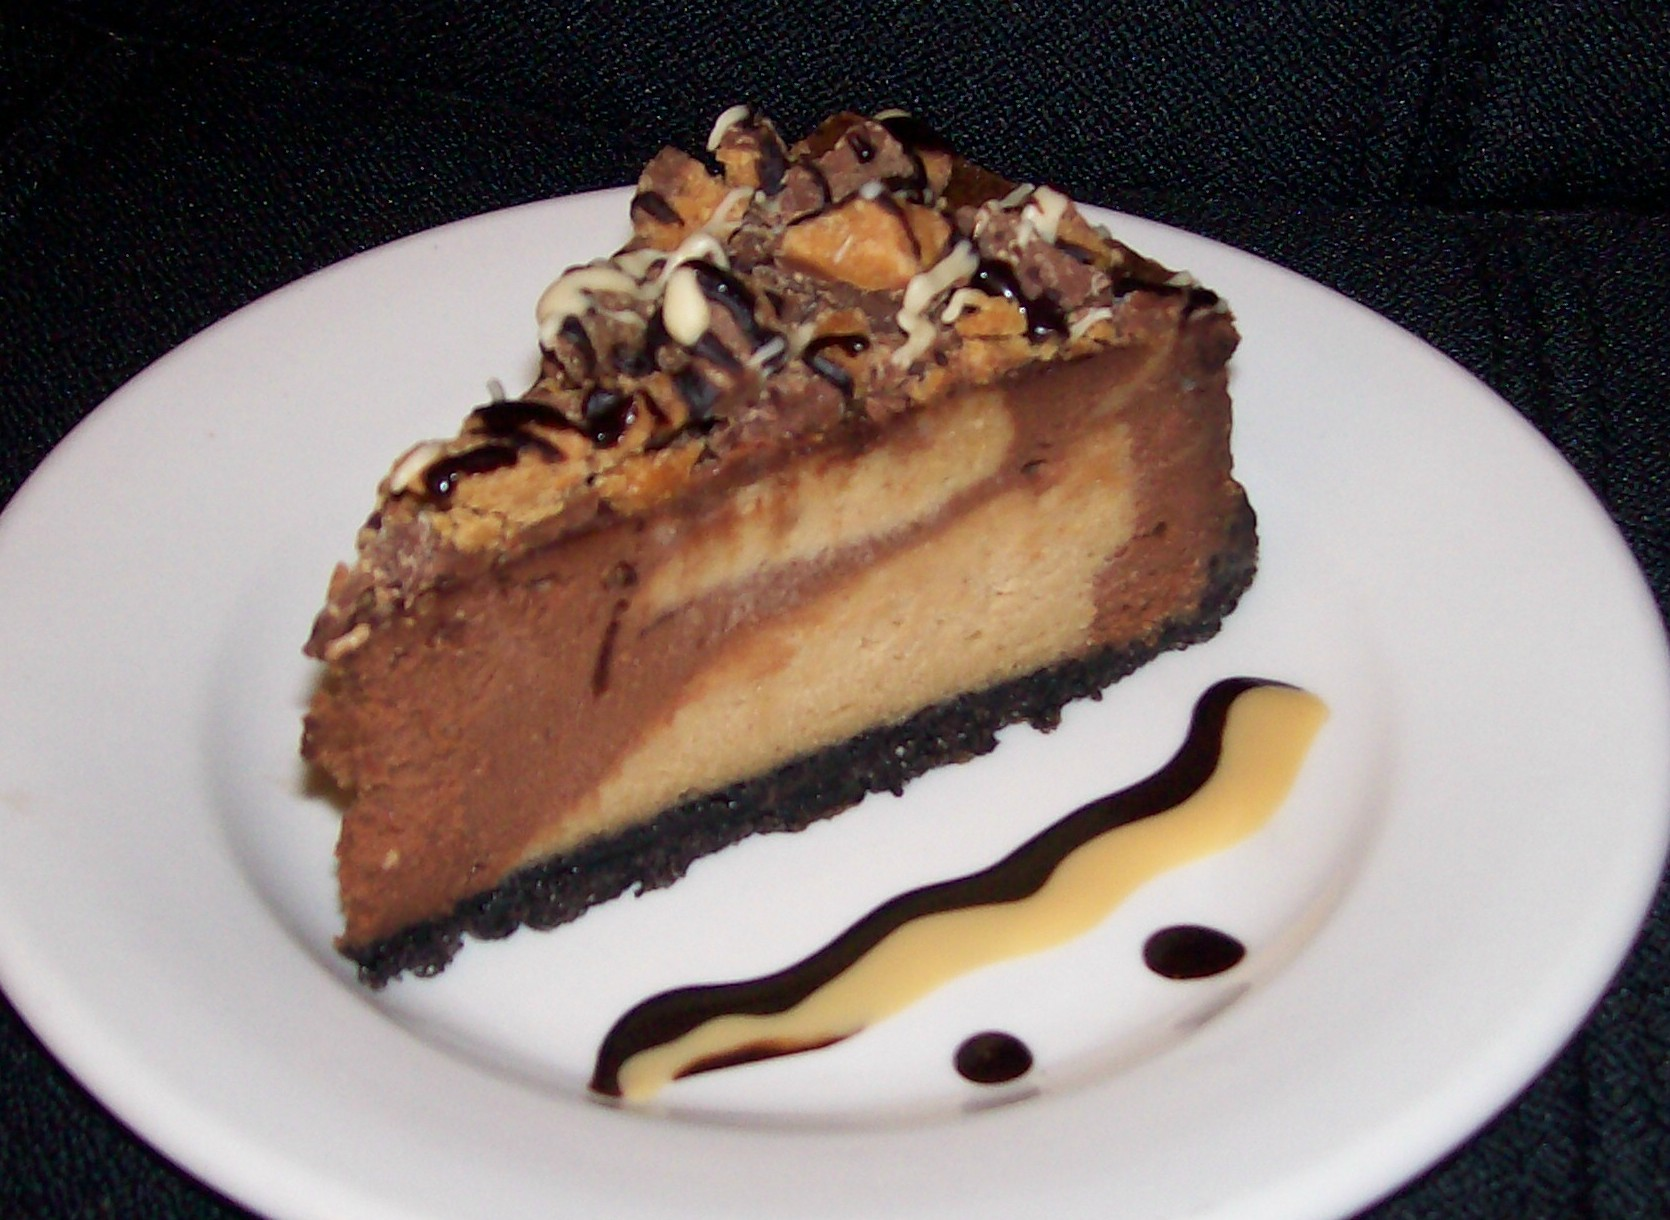 butter cup cheesecake peanut butter cheesecake peanut butter chocolate ...